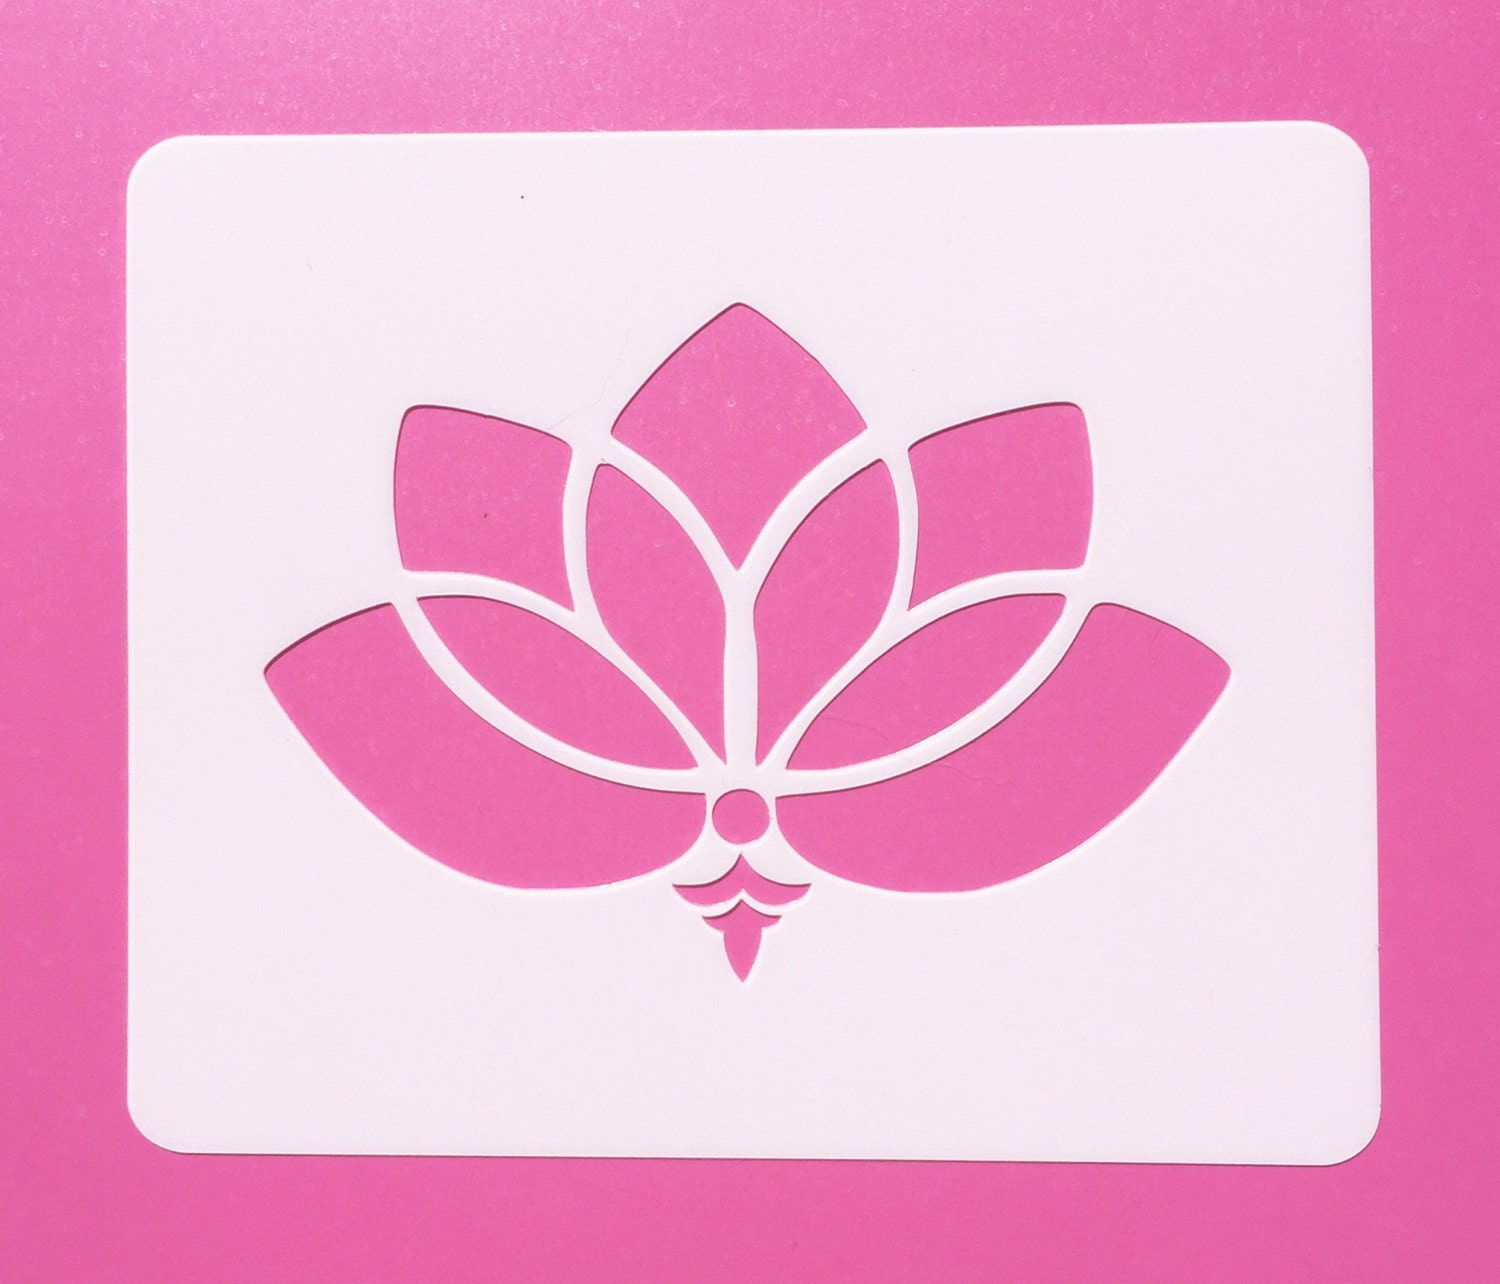 Reusable Mylar Lotus Flower Mylar Stencil Lotus Flower Etsy